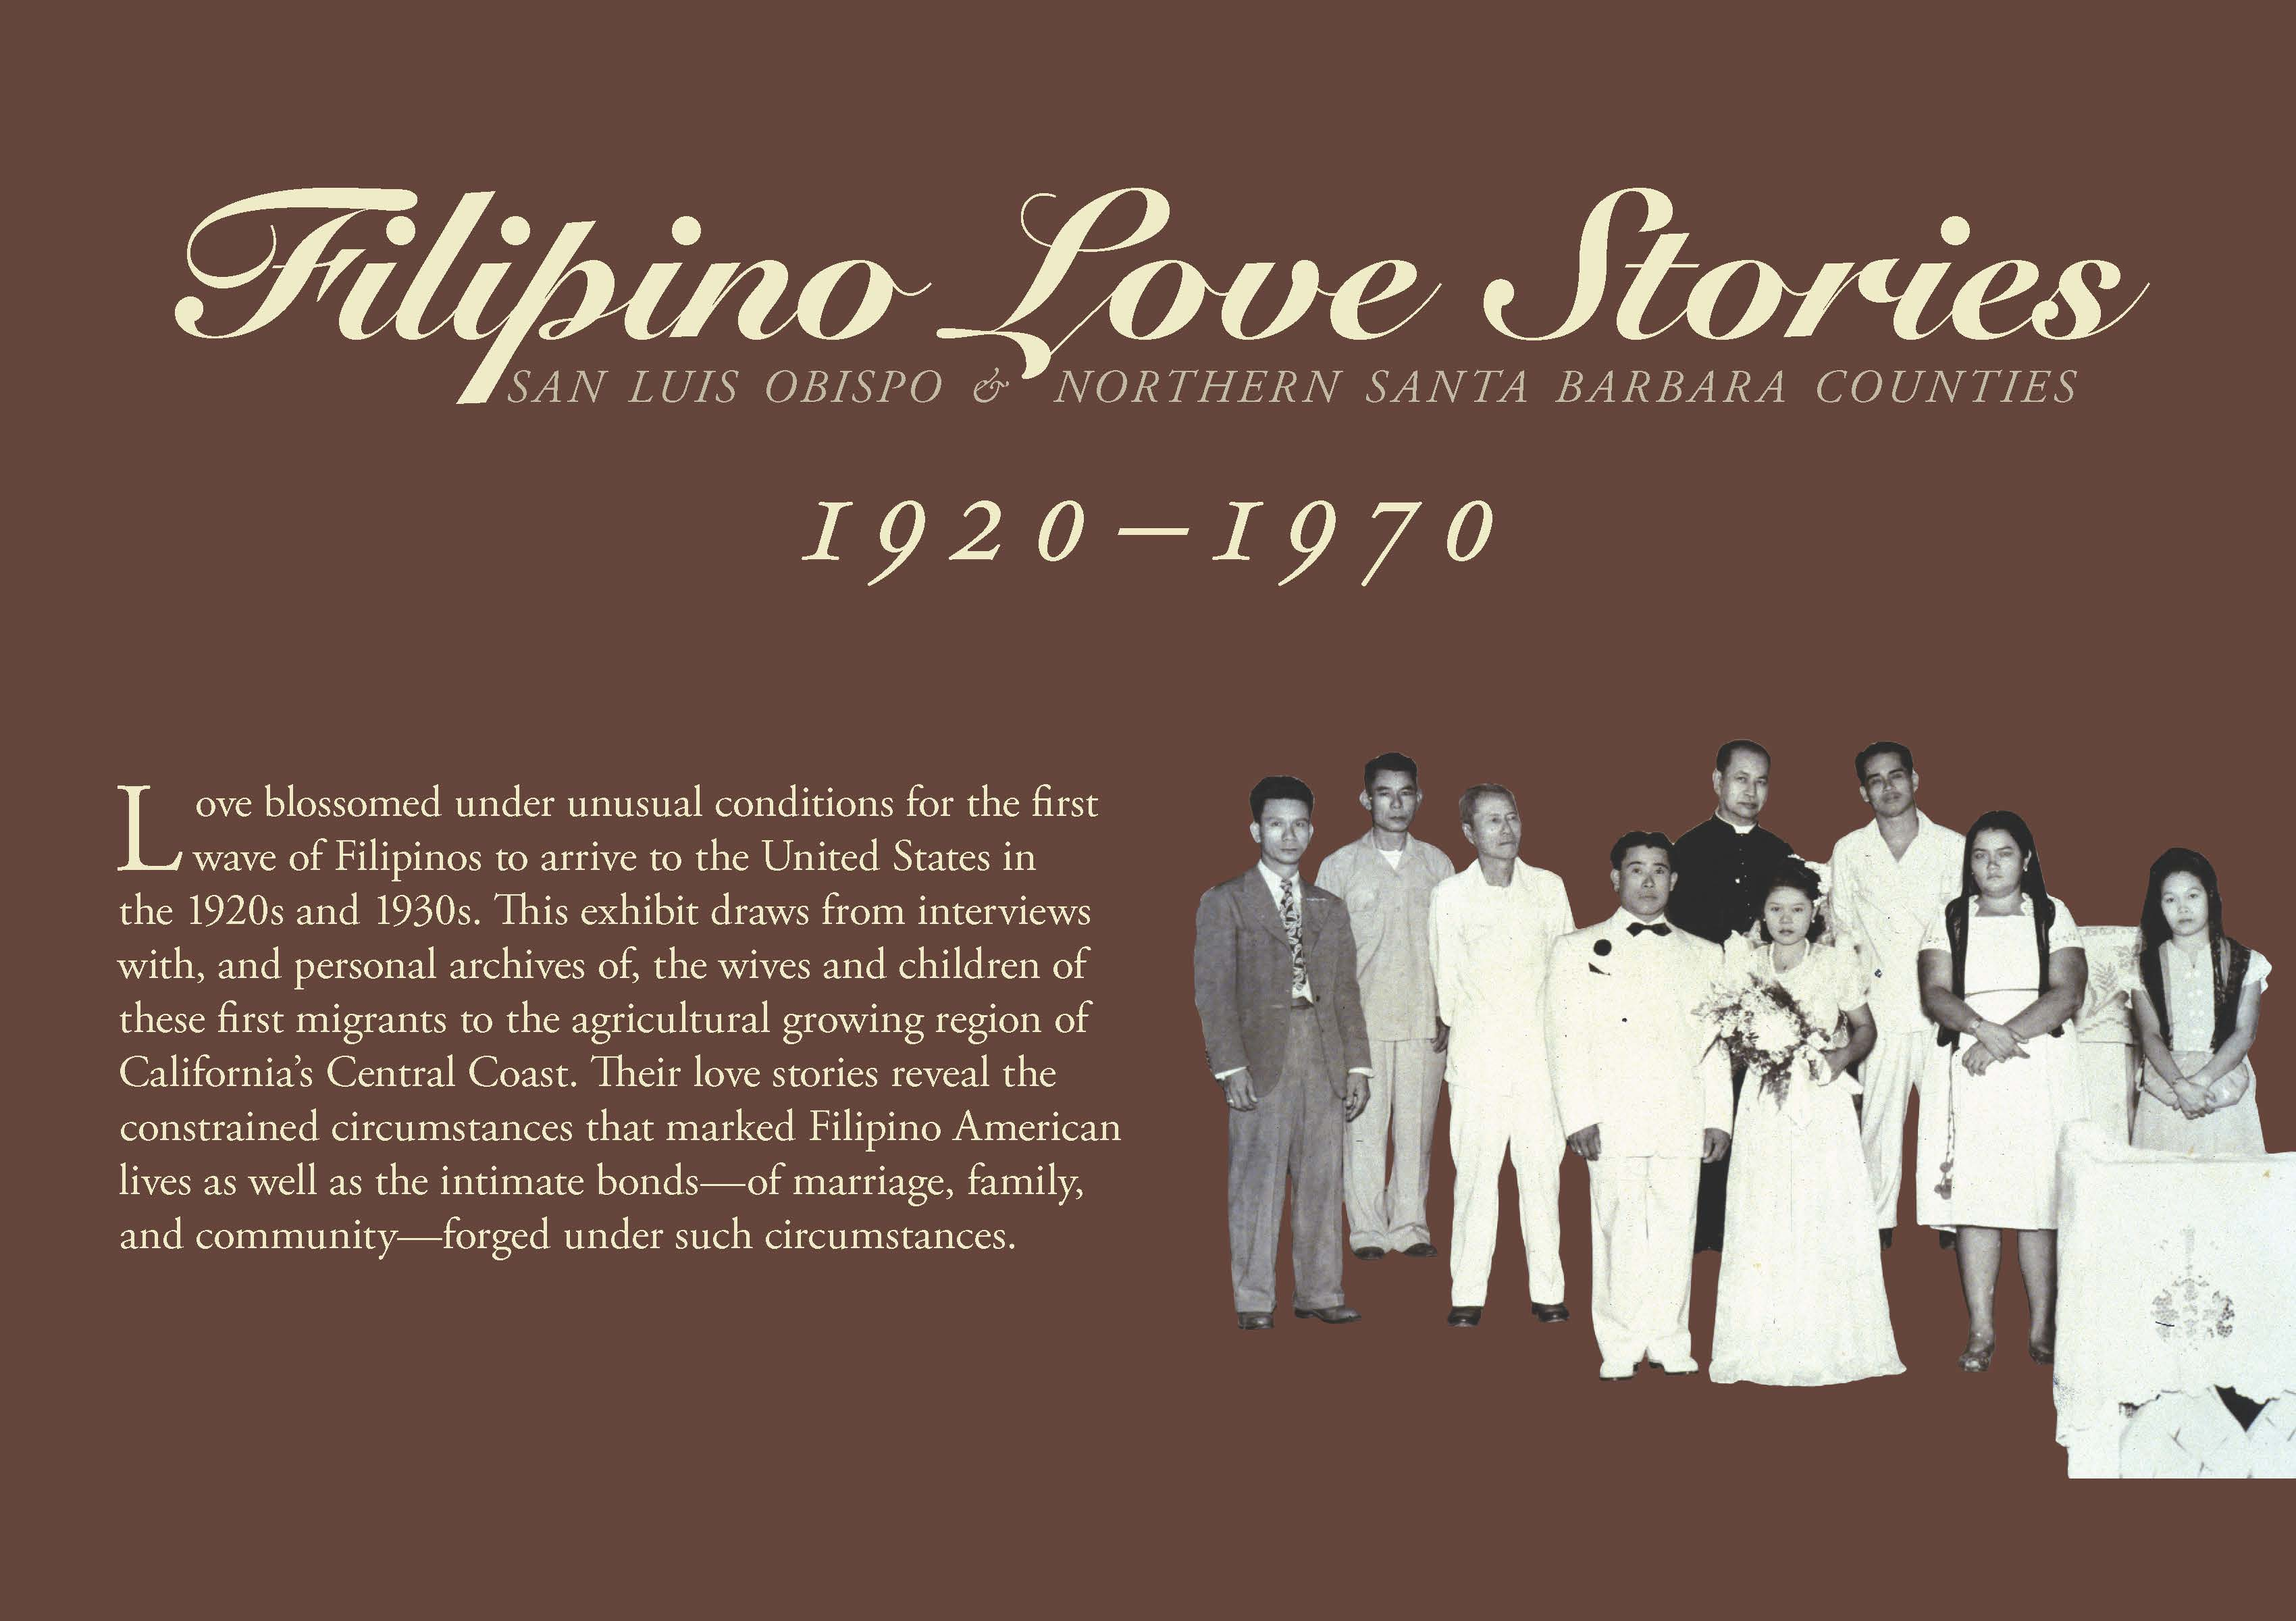 Love blossomed under unusual conditions for the first wave of Filipinos to arrive to the United States in the 1920s and 1930s. This exhibit draws from interviews with, and personal archives of, the wives and children of these first migrants to the agricultural growing region of California's Central Coast. Their love stories reveal the constrained circumstances that marked Filipino American lives as well as the intimate bonds--of marriage, family, and community--forged under such circumstances.